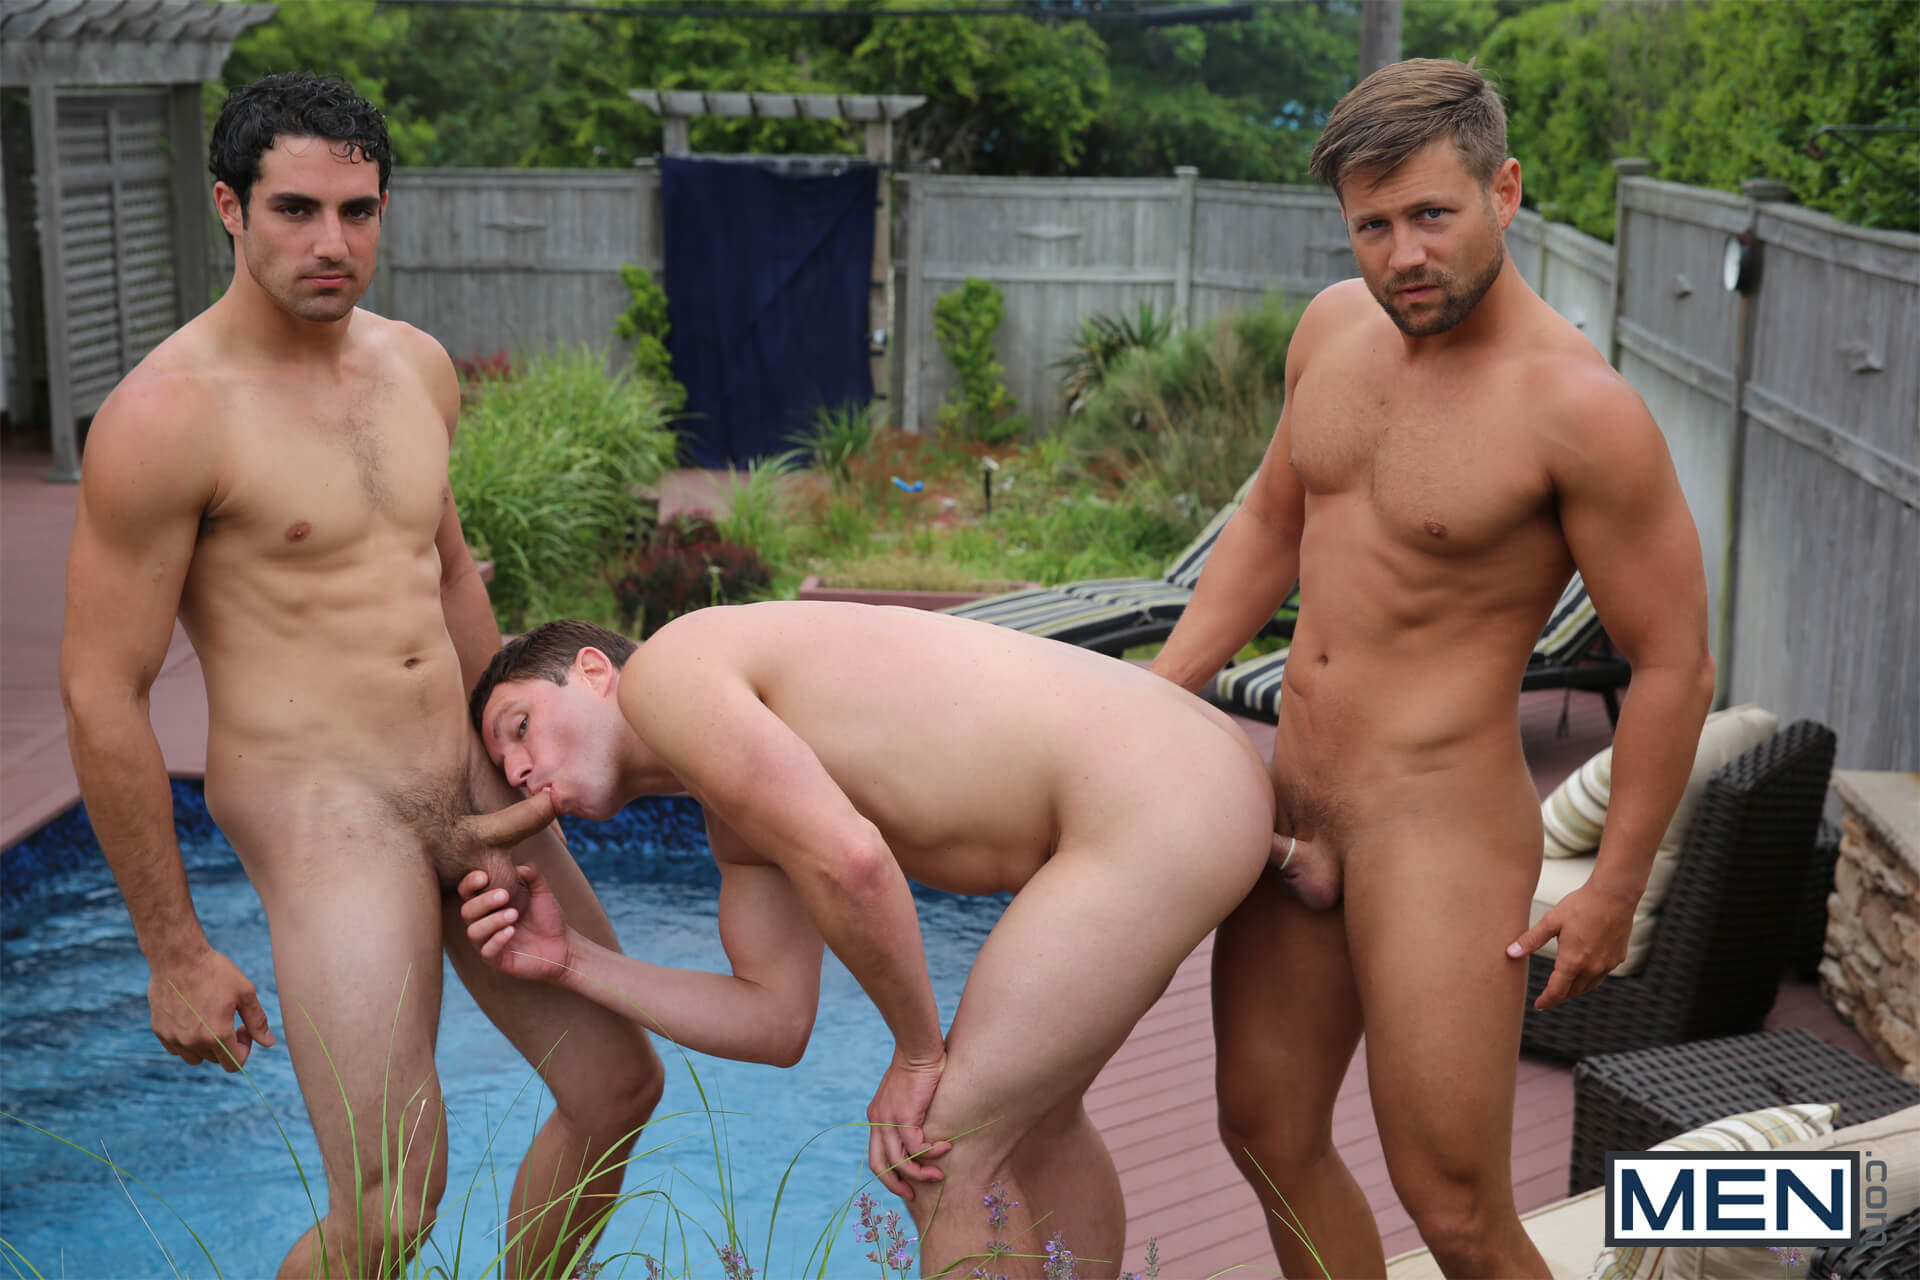 MEN.COM » Drill My Hole » Retribution Part 4 » Bobby Clark » Jack King » Travis James